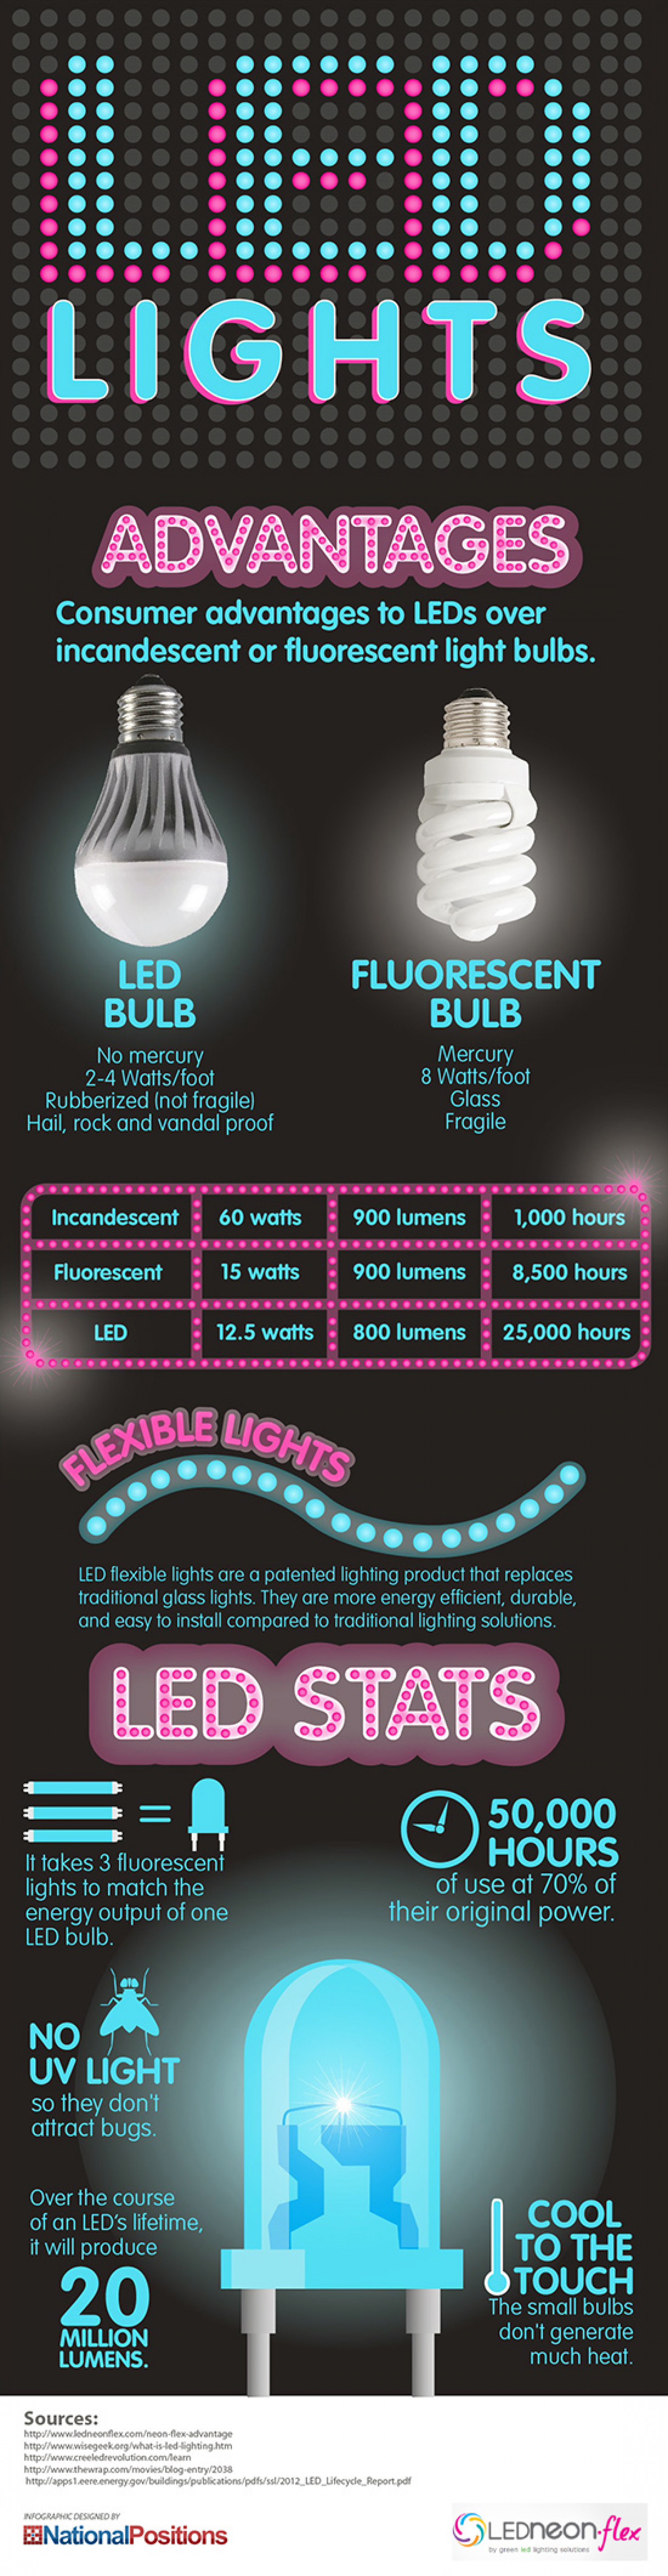 LED Lights Advantages and Stats Infographic